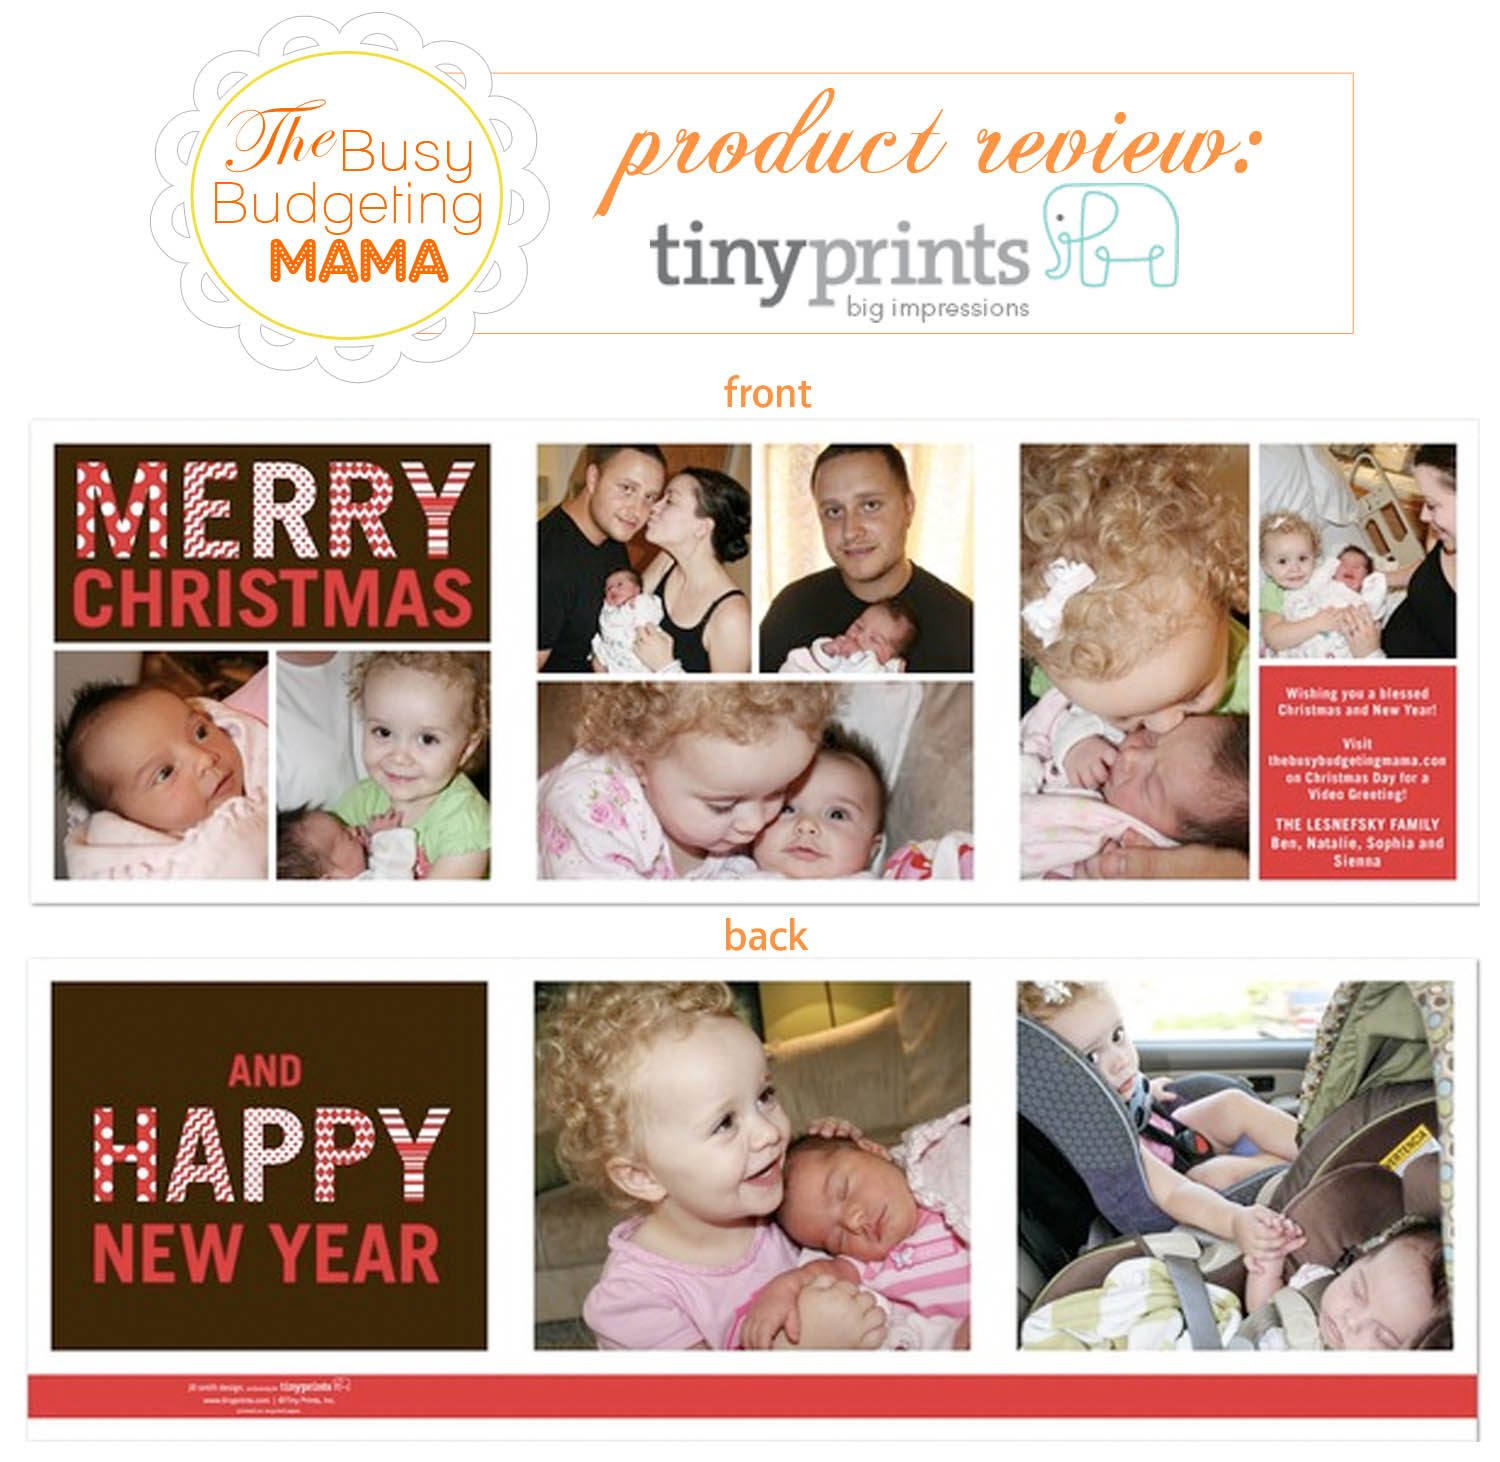 Our 2010 Christmas Card & Tiny Prints Review – At Home With Natalie